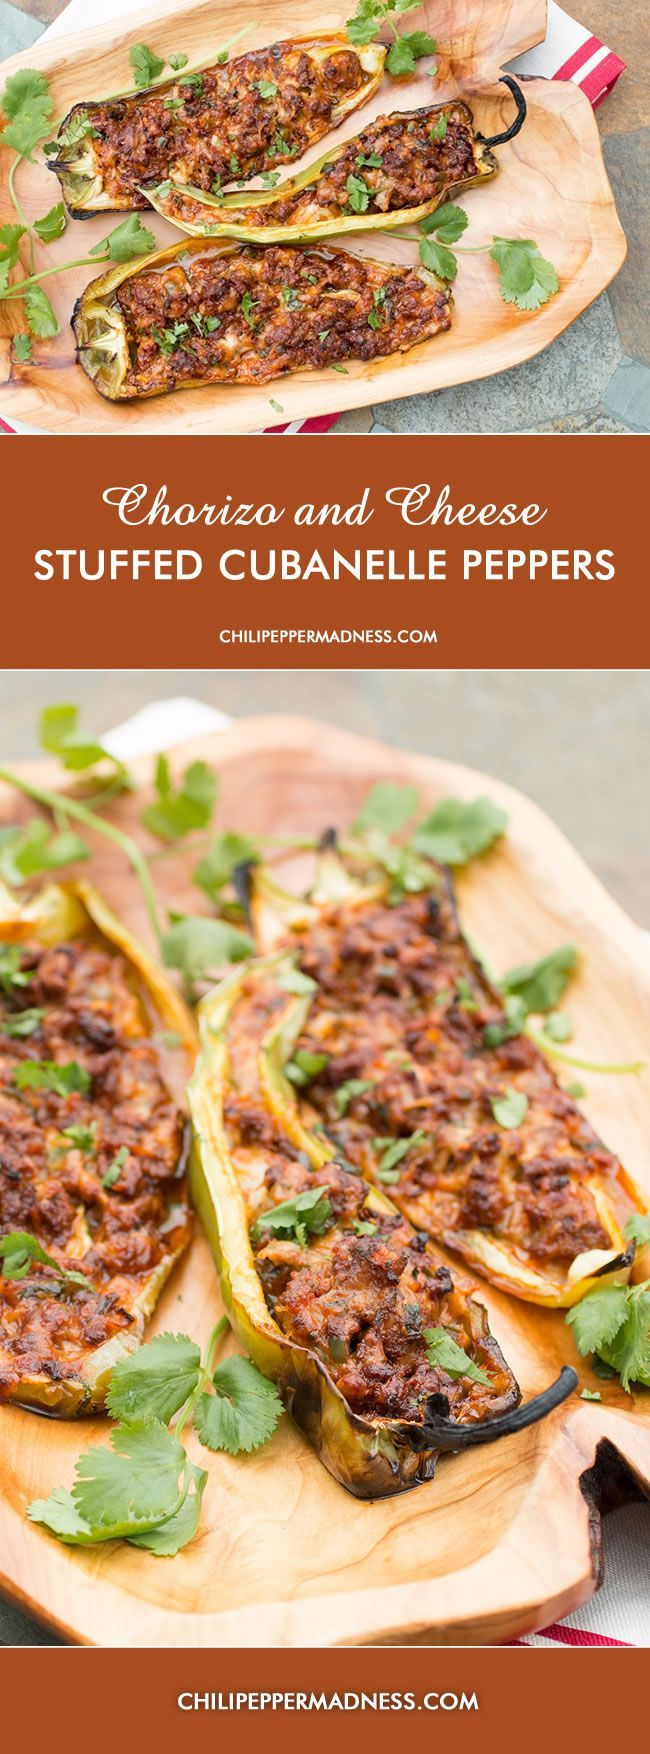 Grilled Chorizo and Cheese Stuffed Cubanelle Peppers | Chili Pepper Madness